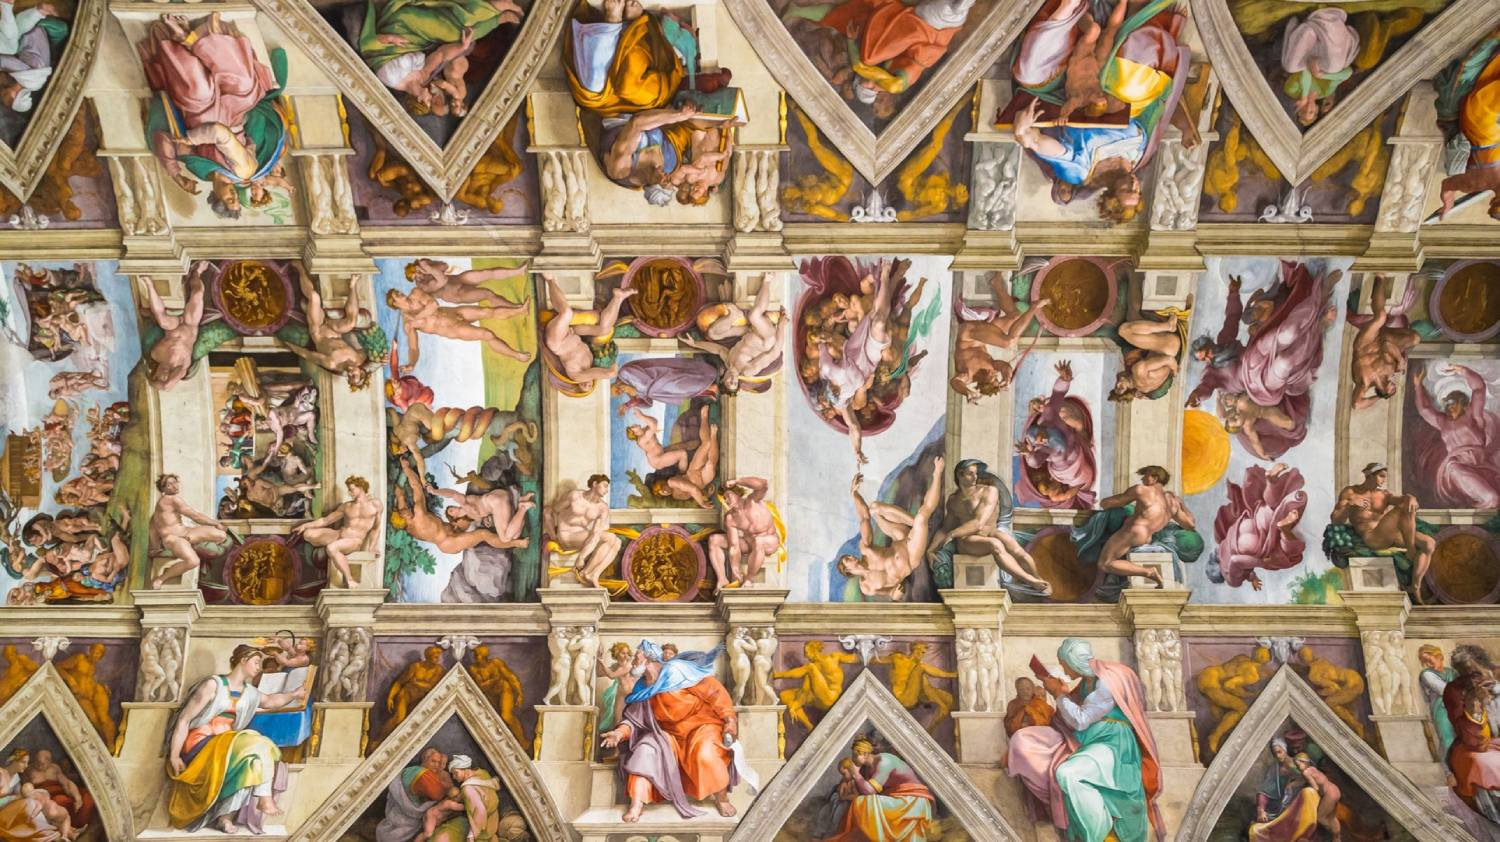 The Sistine Chapel - Things To Do In Rome